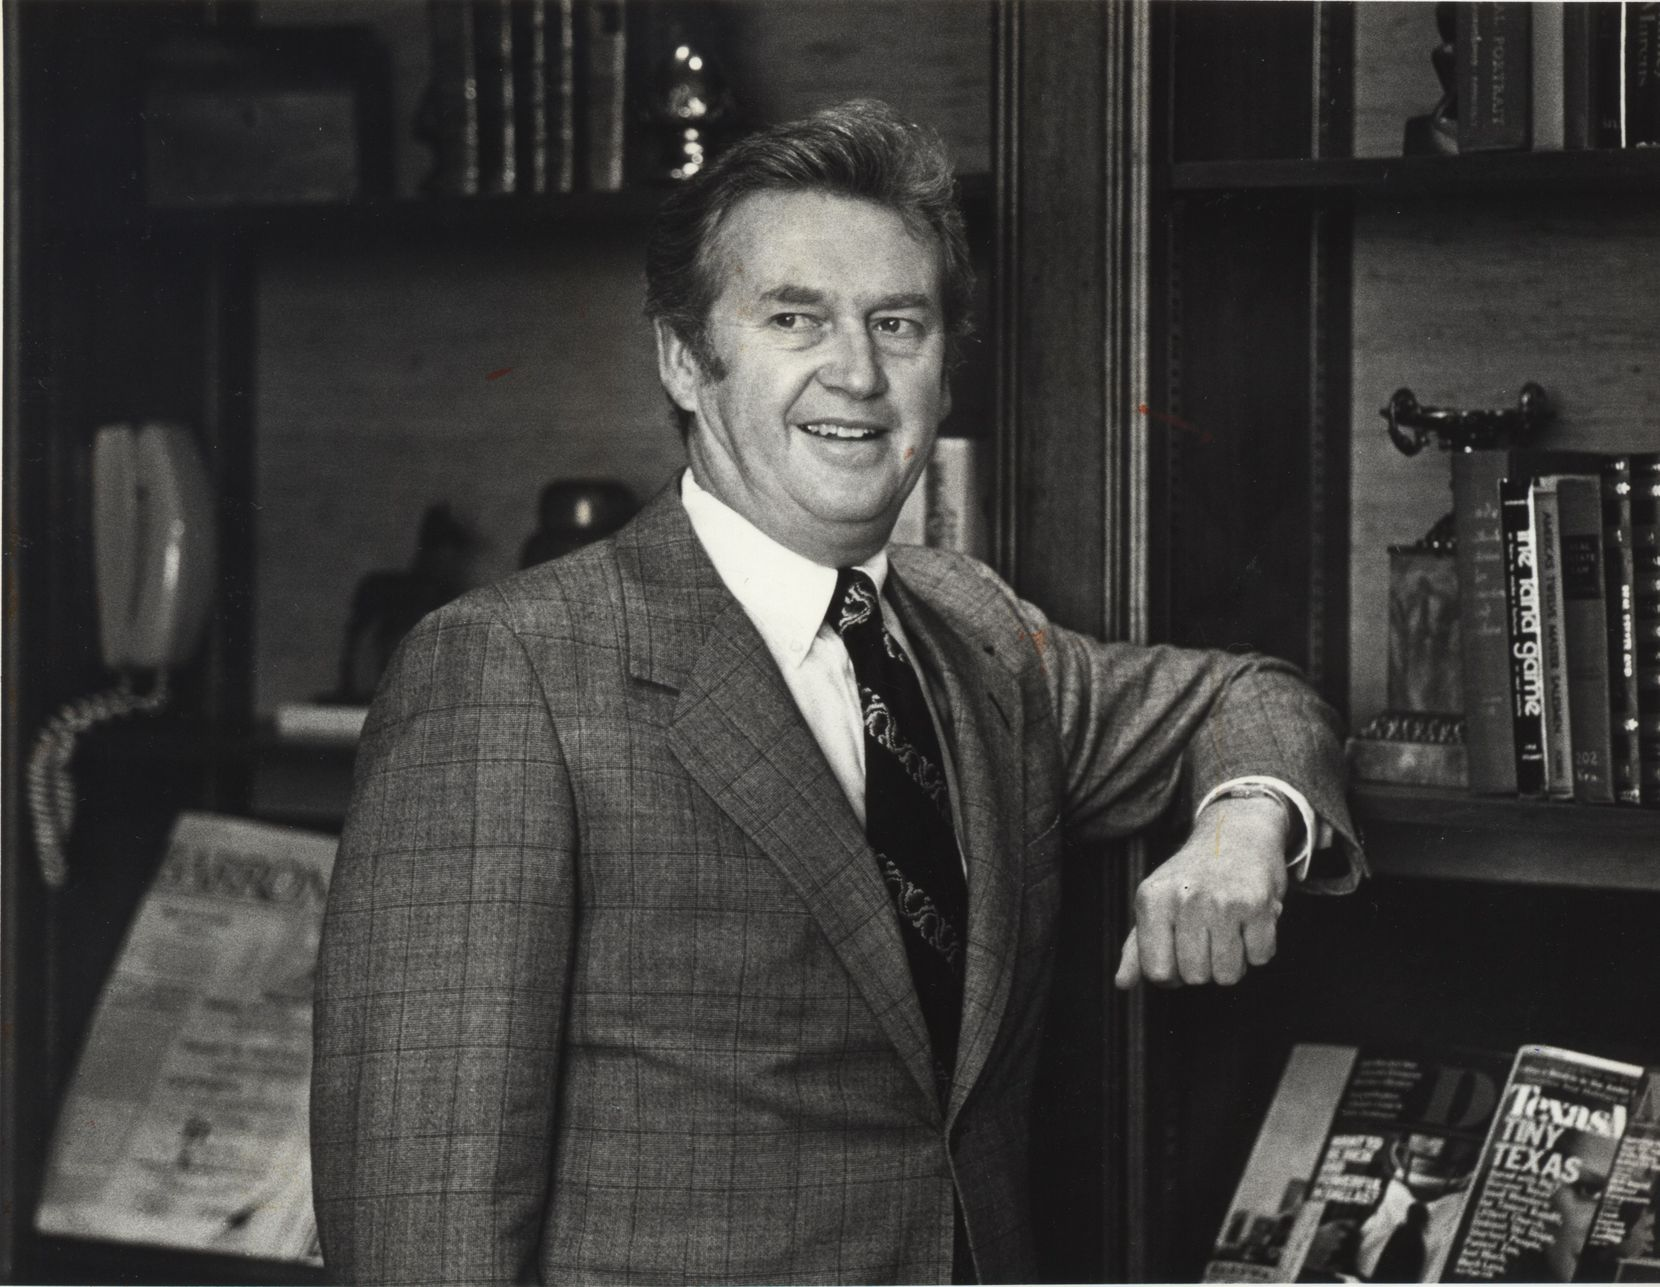 Dallas developer John F. Eulich in 1980.